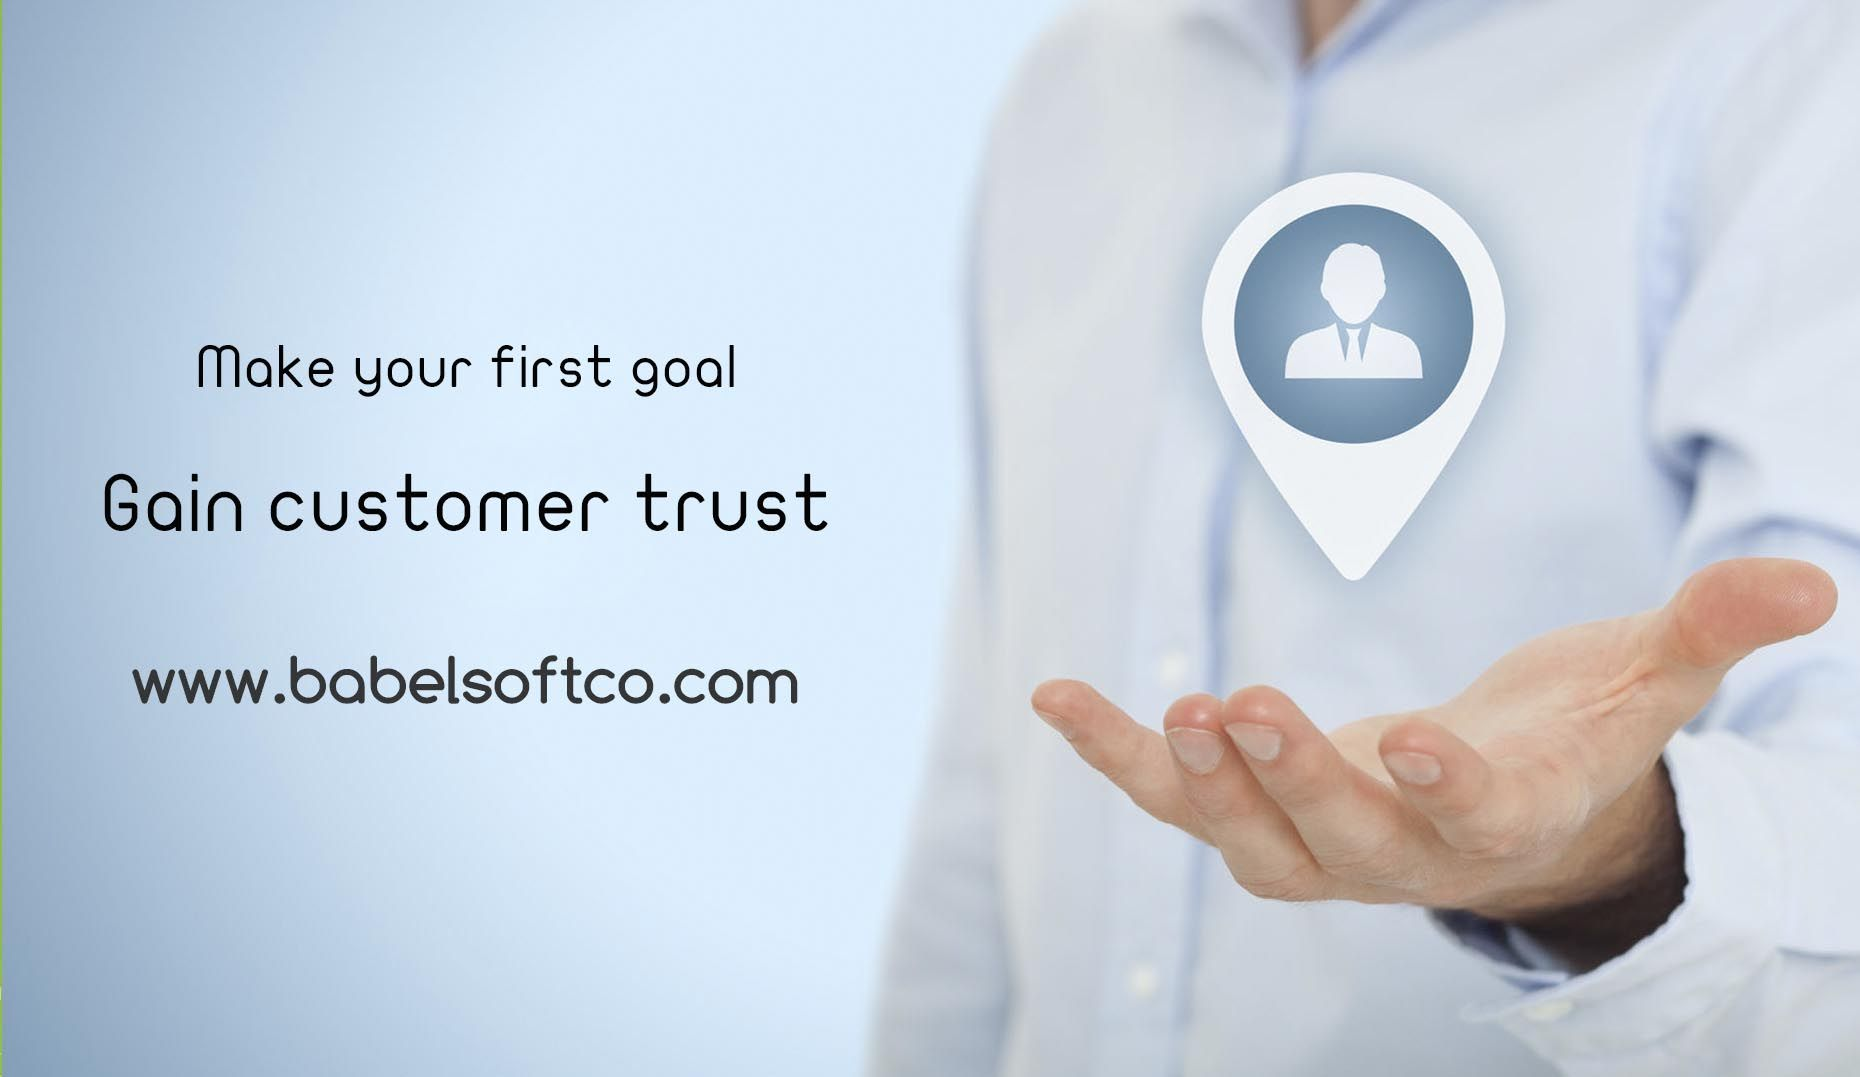 Make your first goal to gain the trust of the customer through the ten ways